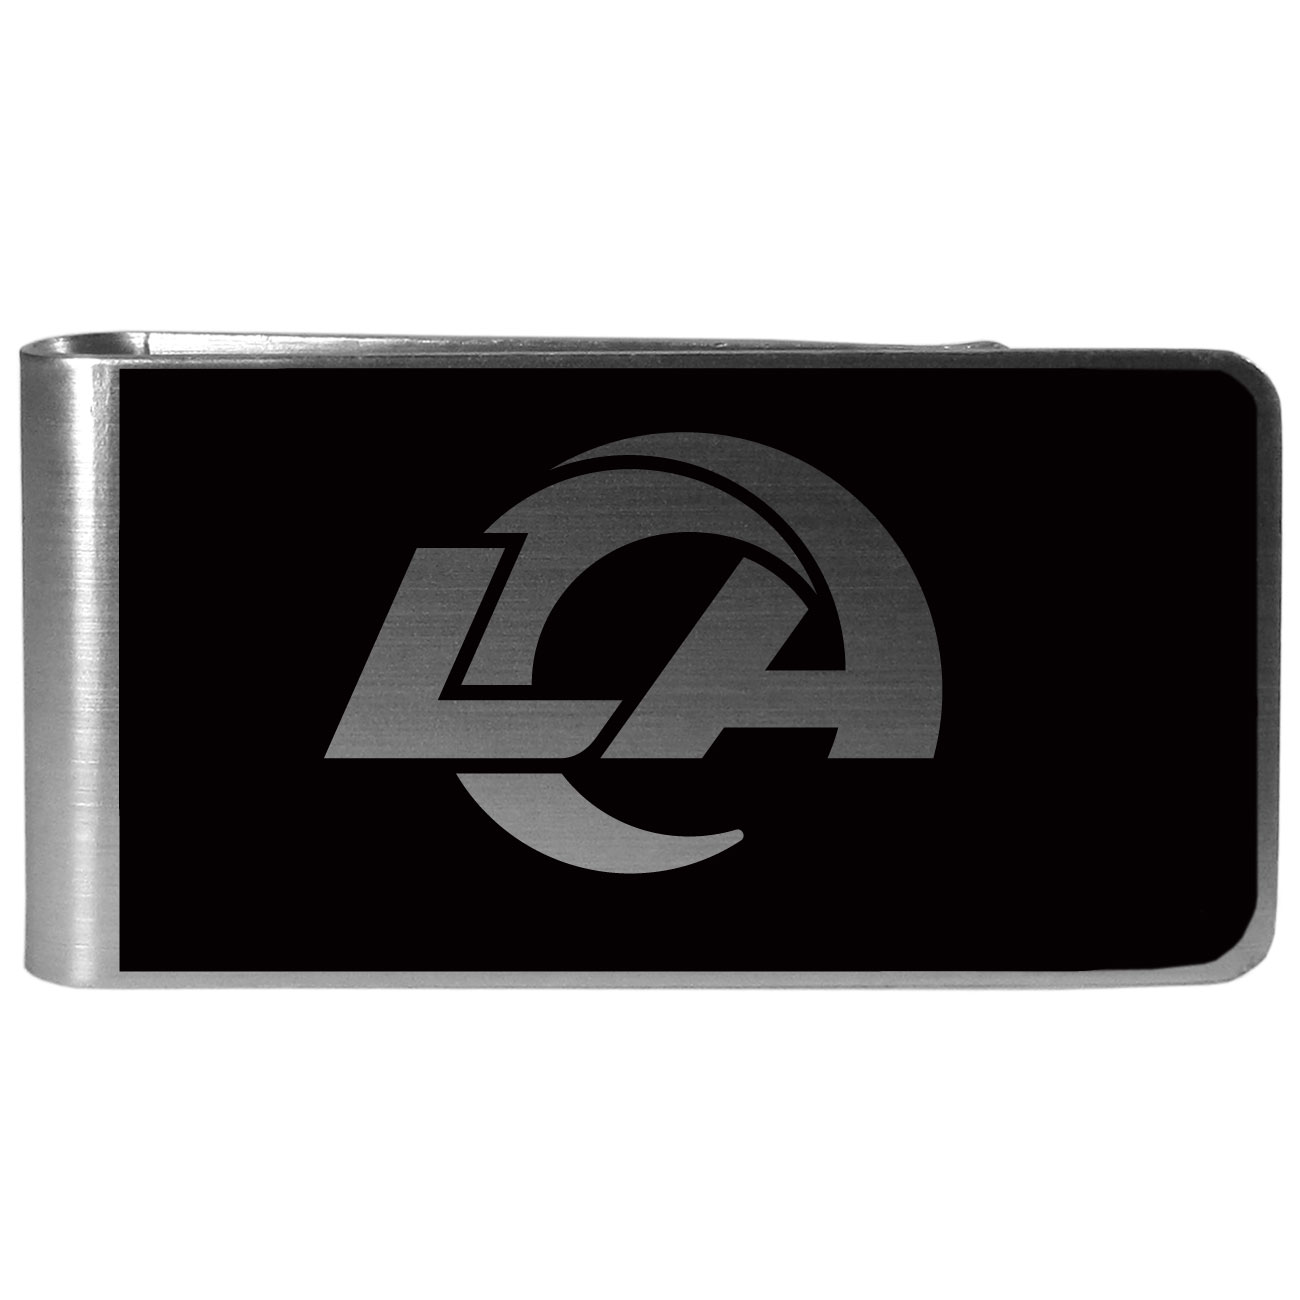 Los Angeles Rams Black and Steel Money Clip - Our monochromatic steel money clips have a classic style and superior quality. The strong, steel clip has a black overlay of the Los Angeles Rams logo over the brushed metal finish creating a stylish men's fashion accessory that would make any fan proud.